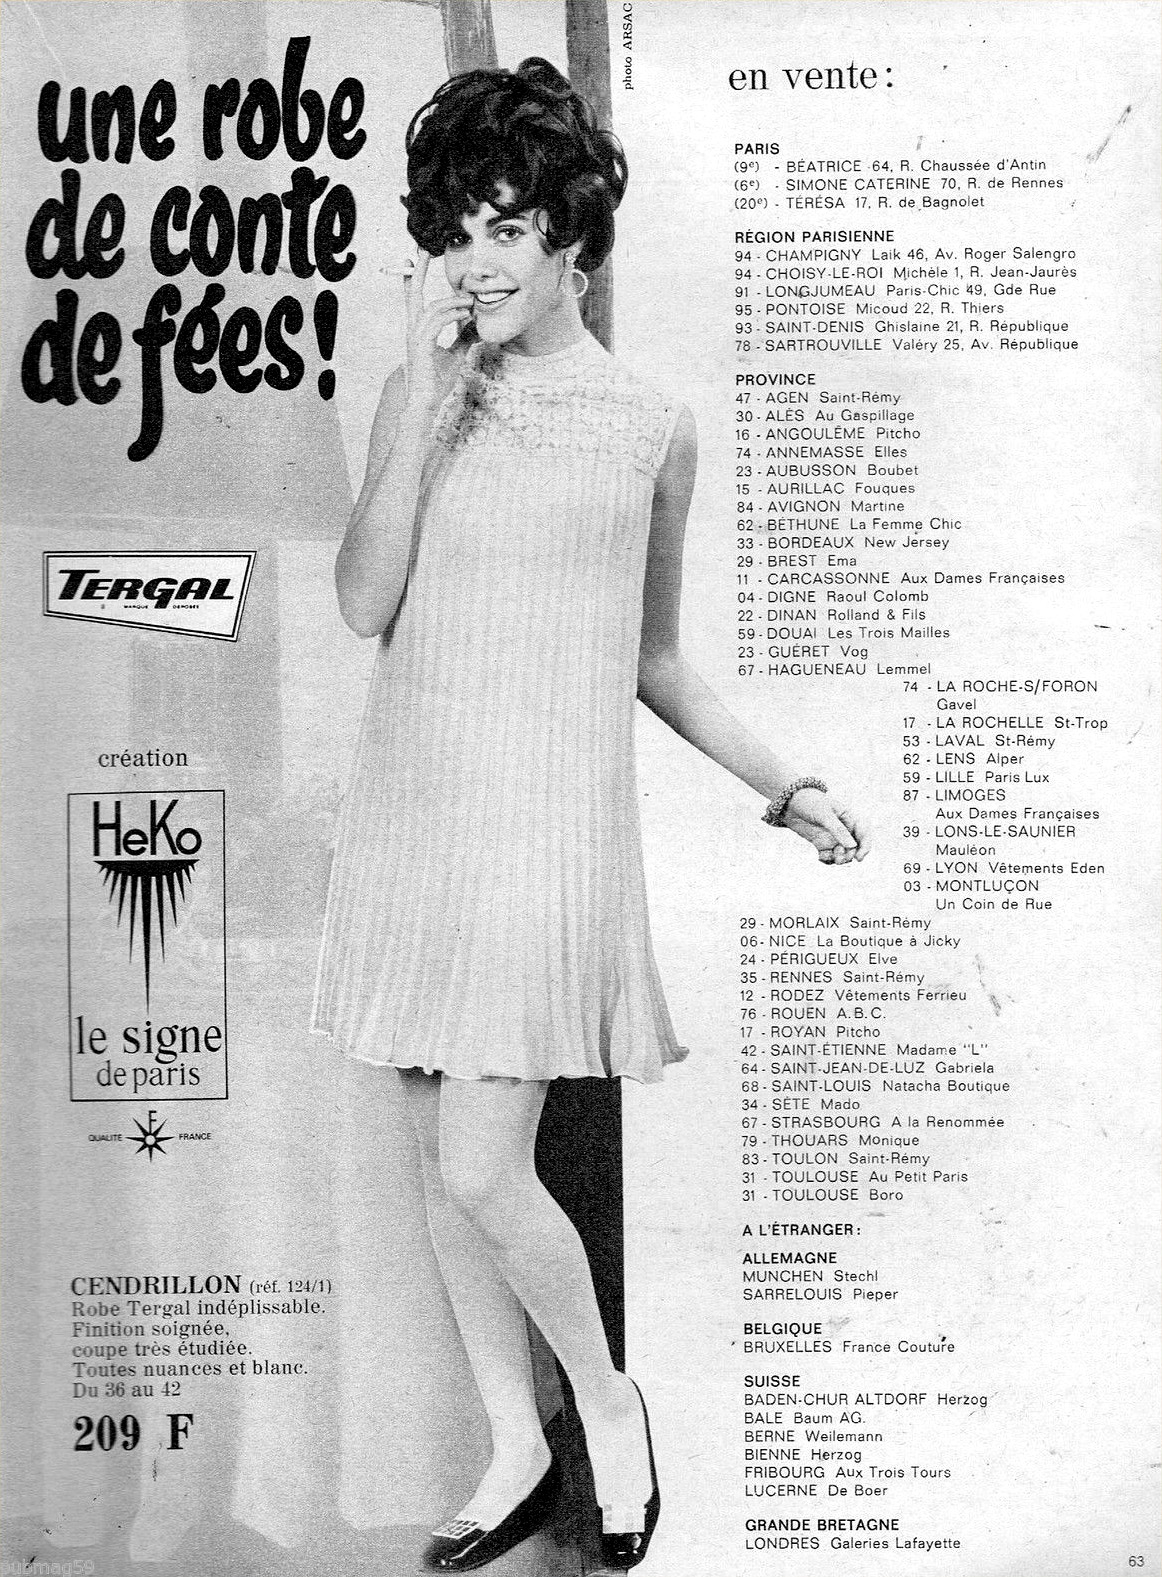 Publicité Advertising 1968 Pret à porter robe Heko